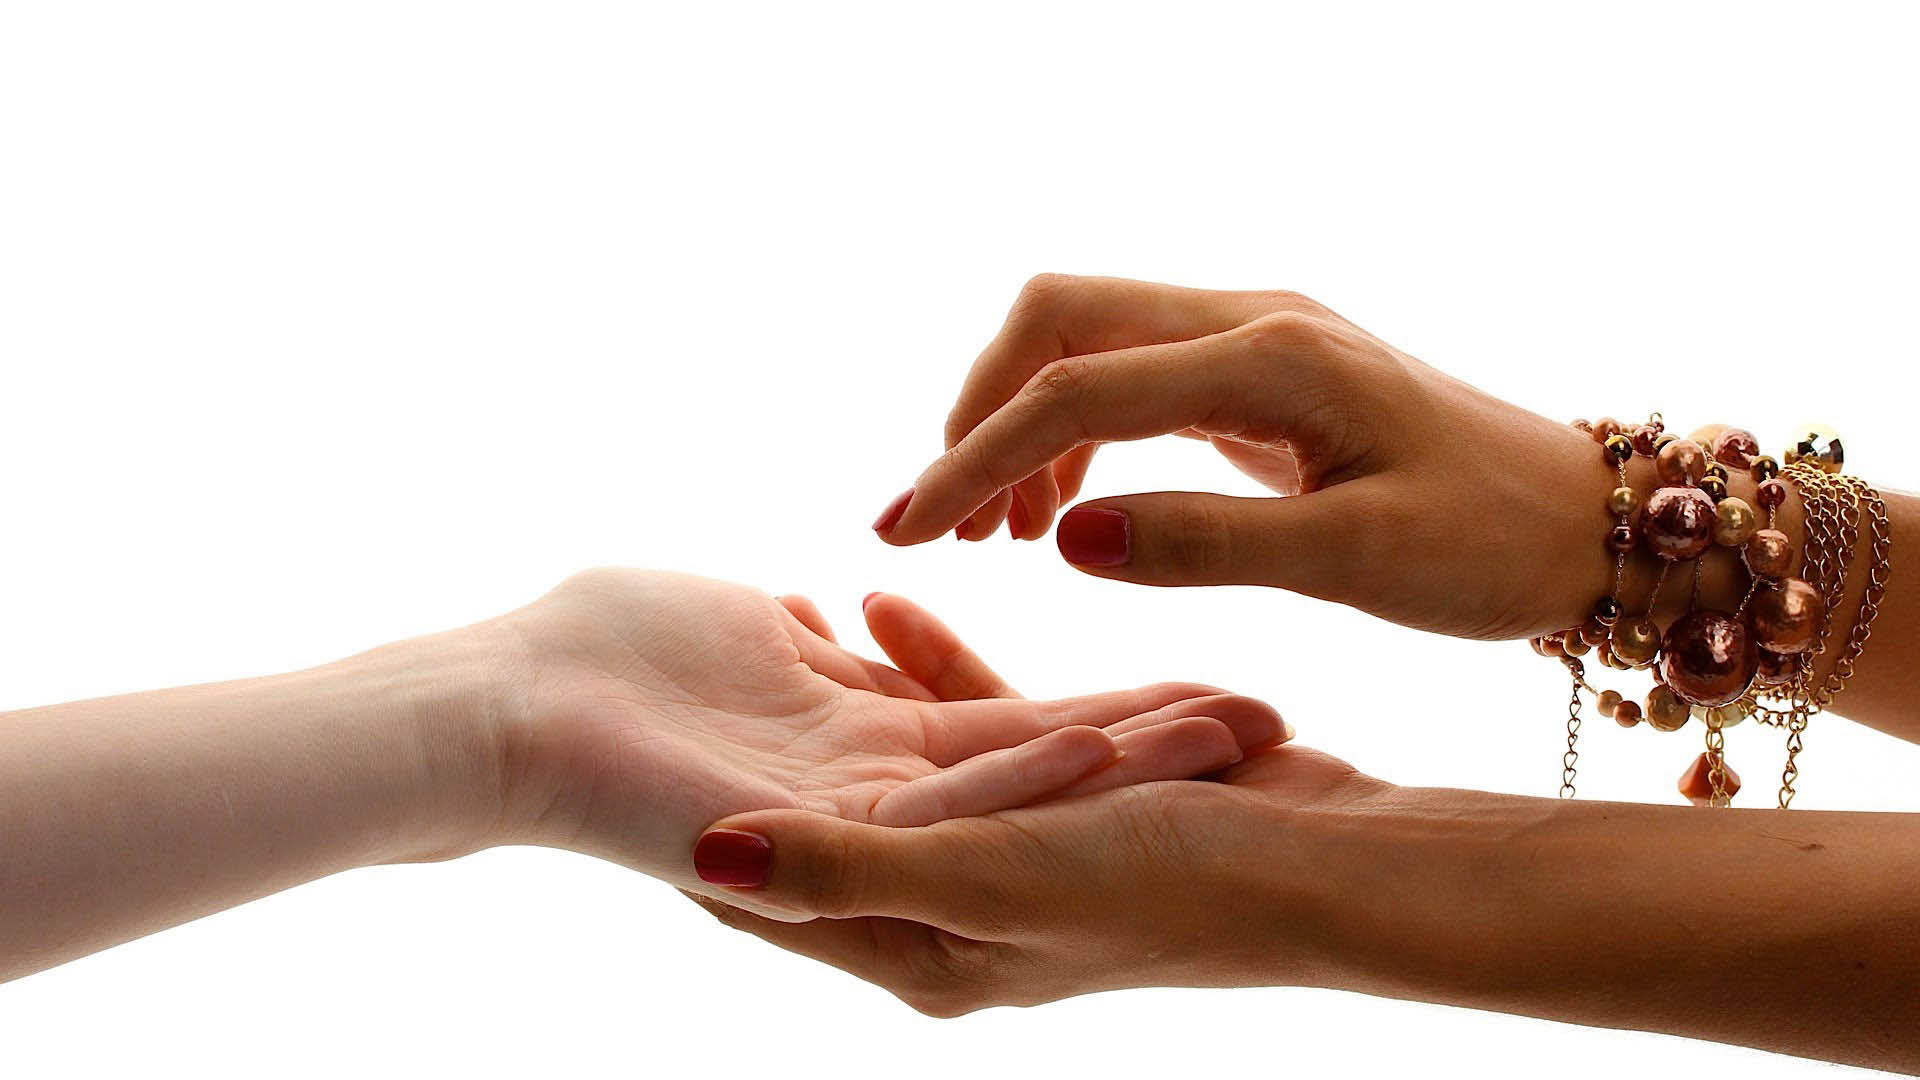 Picture of hand readings by Psychic Boutique Readings by Jennifer in Washington County.